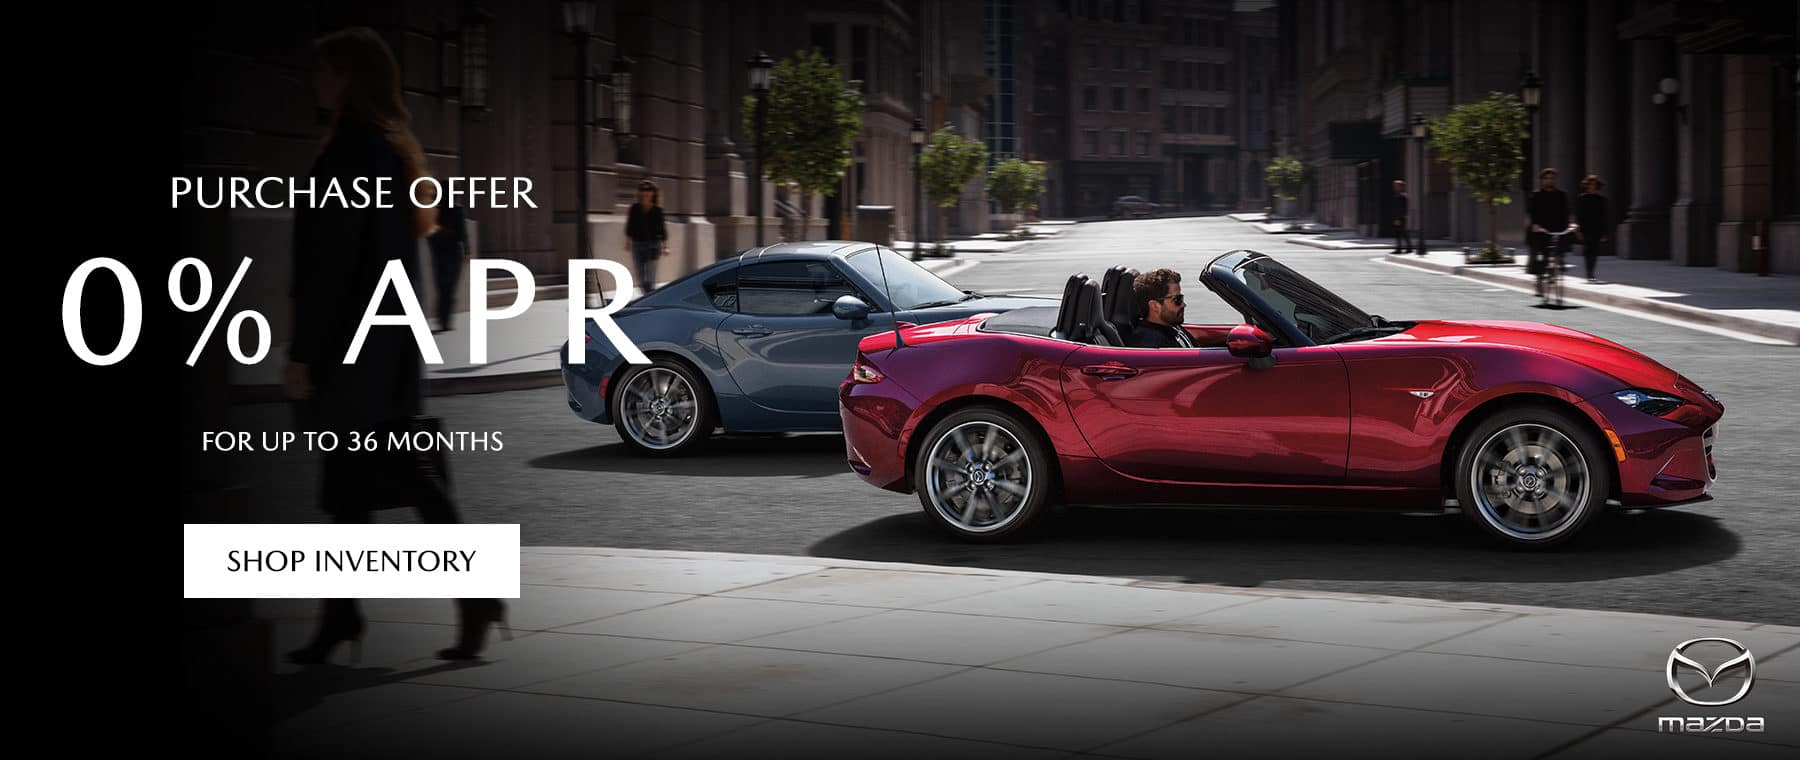 PURCHASE OFFER for 0% APR for up to 36 MONTHS